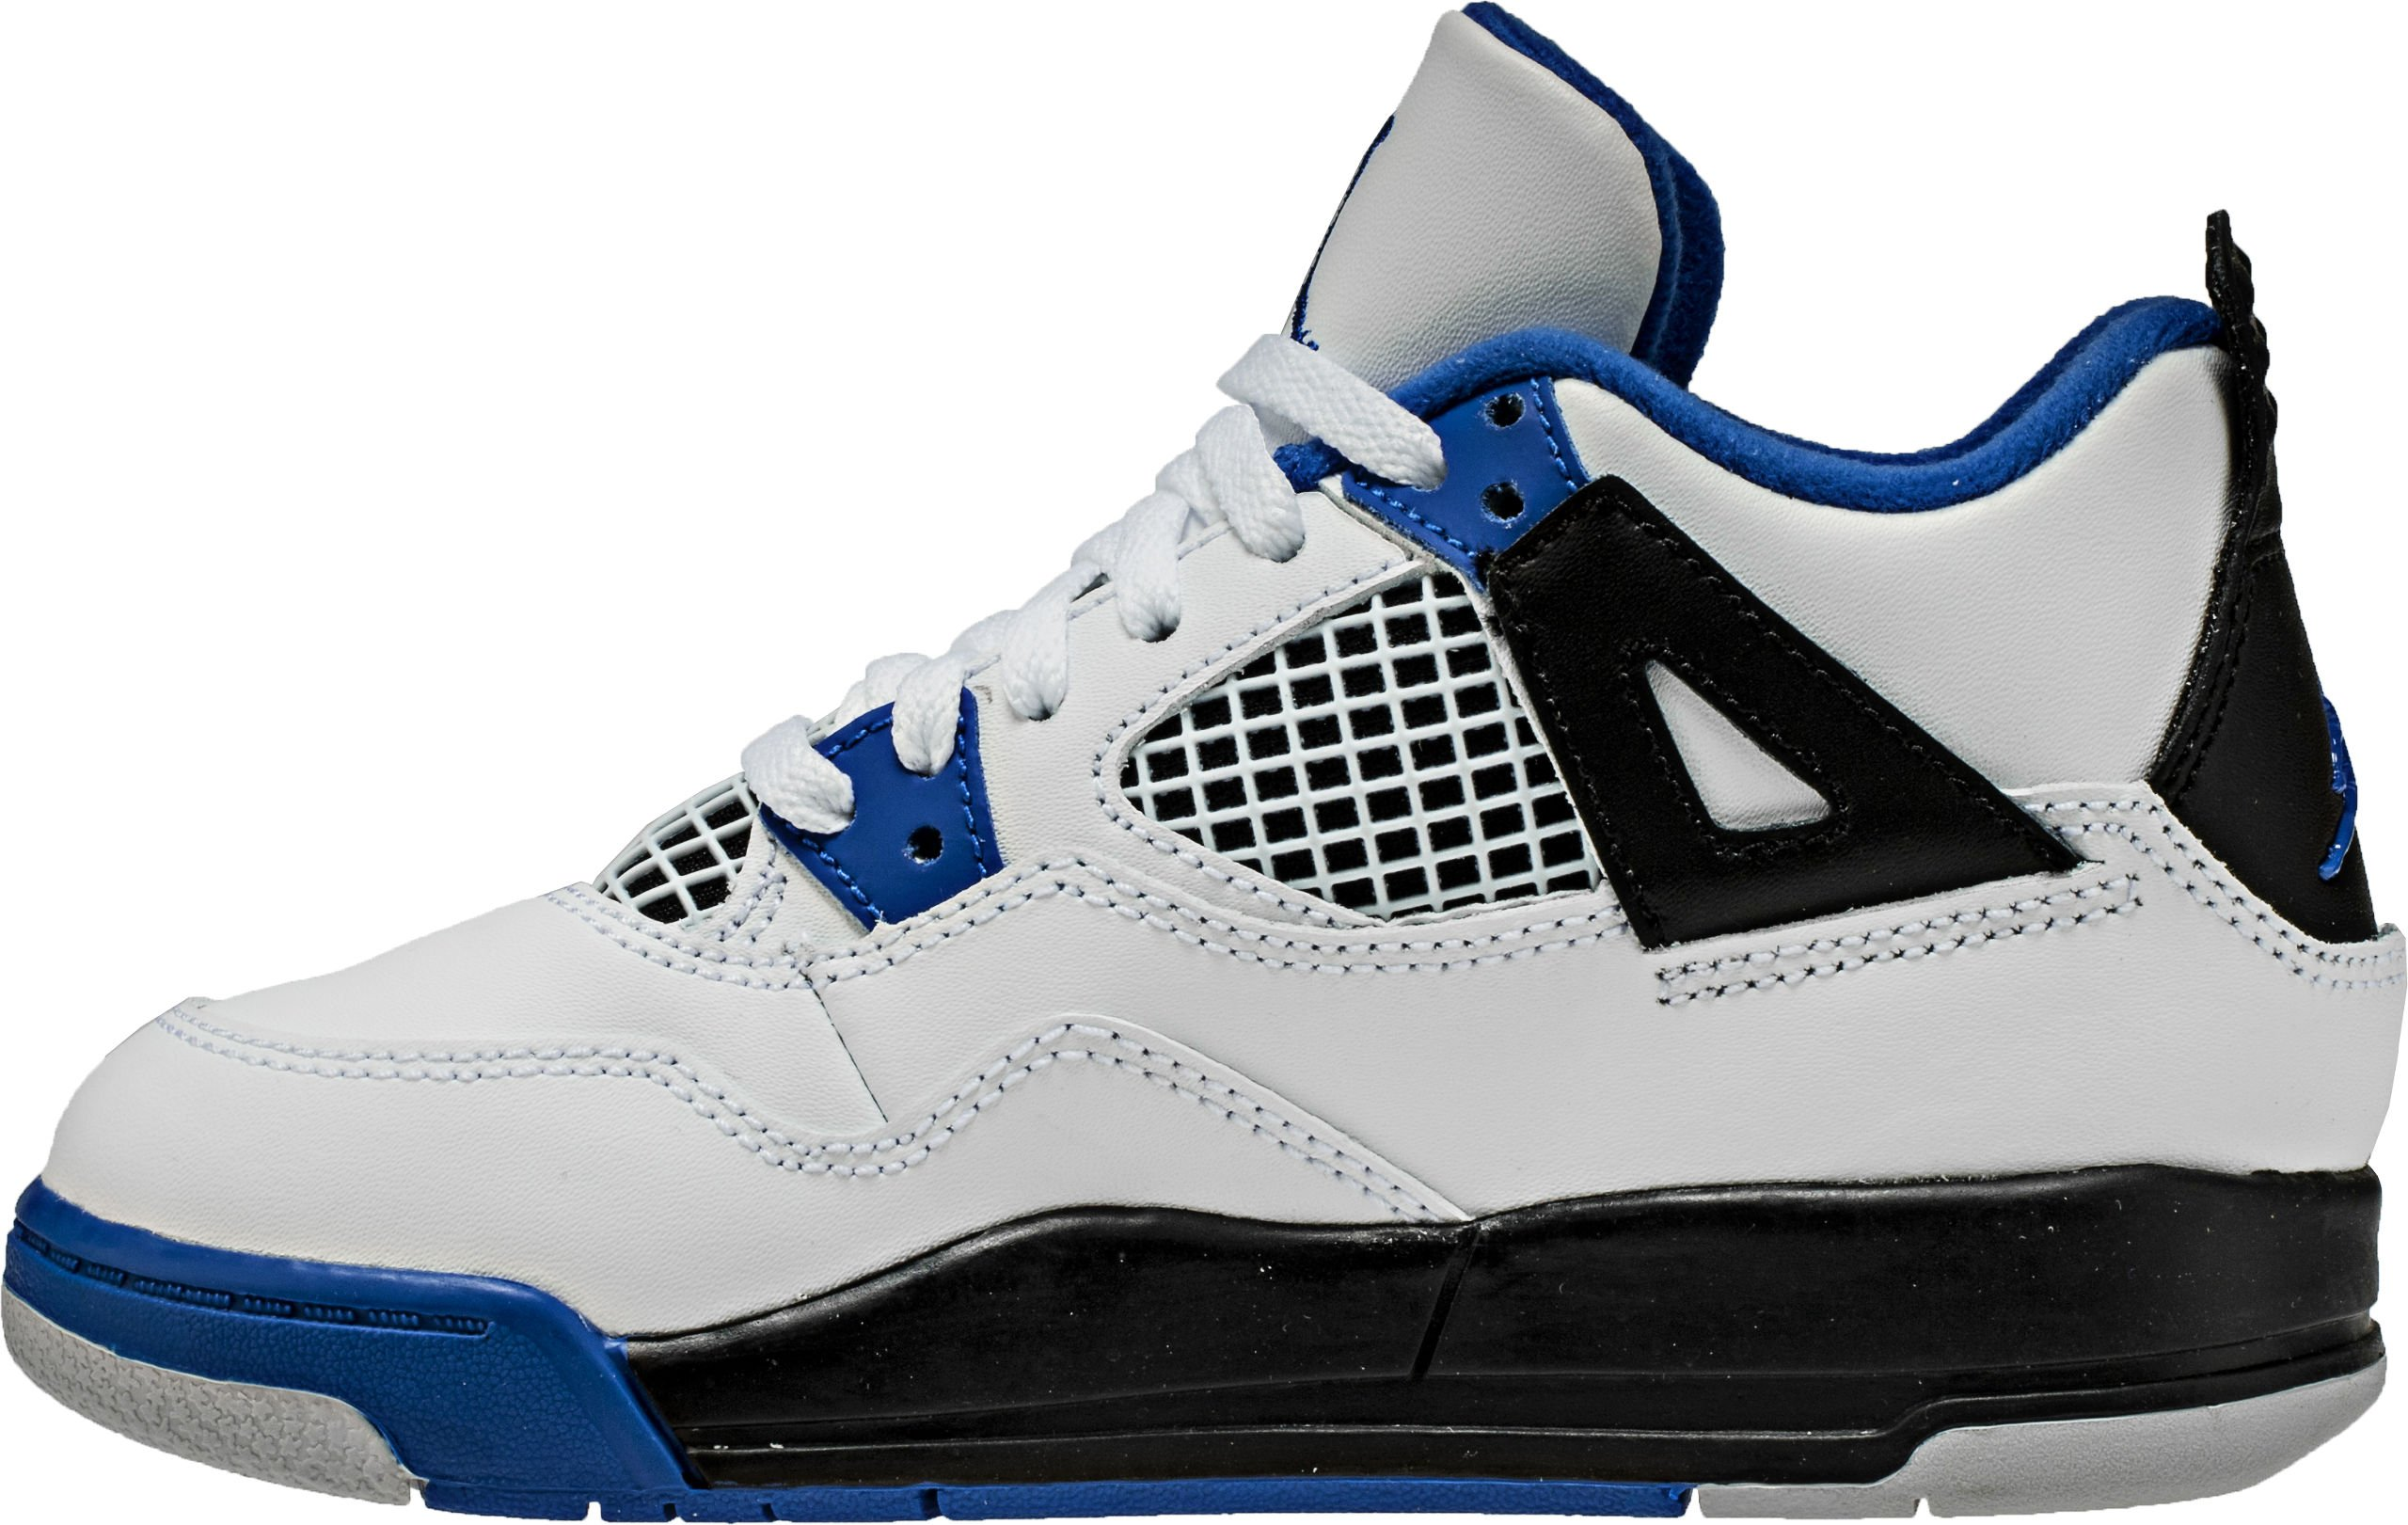 Jordan 4 RETRO BP boys fashion-sneakers 308499-117_1Y - White/Game Royal-black